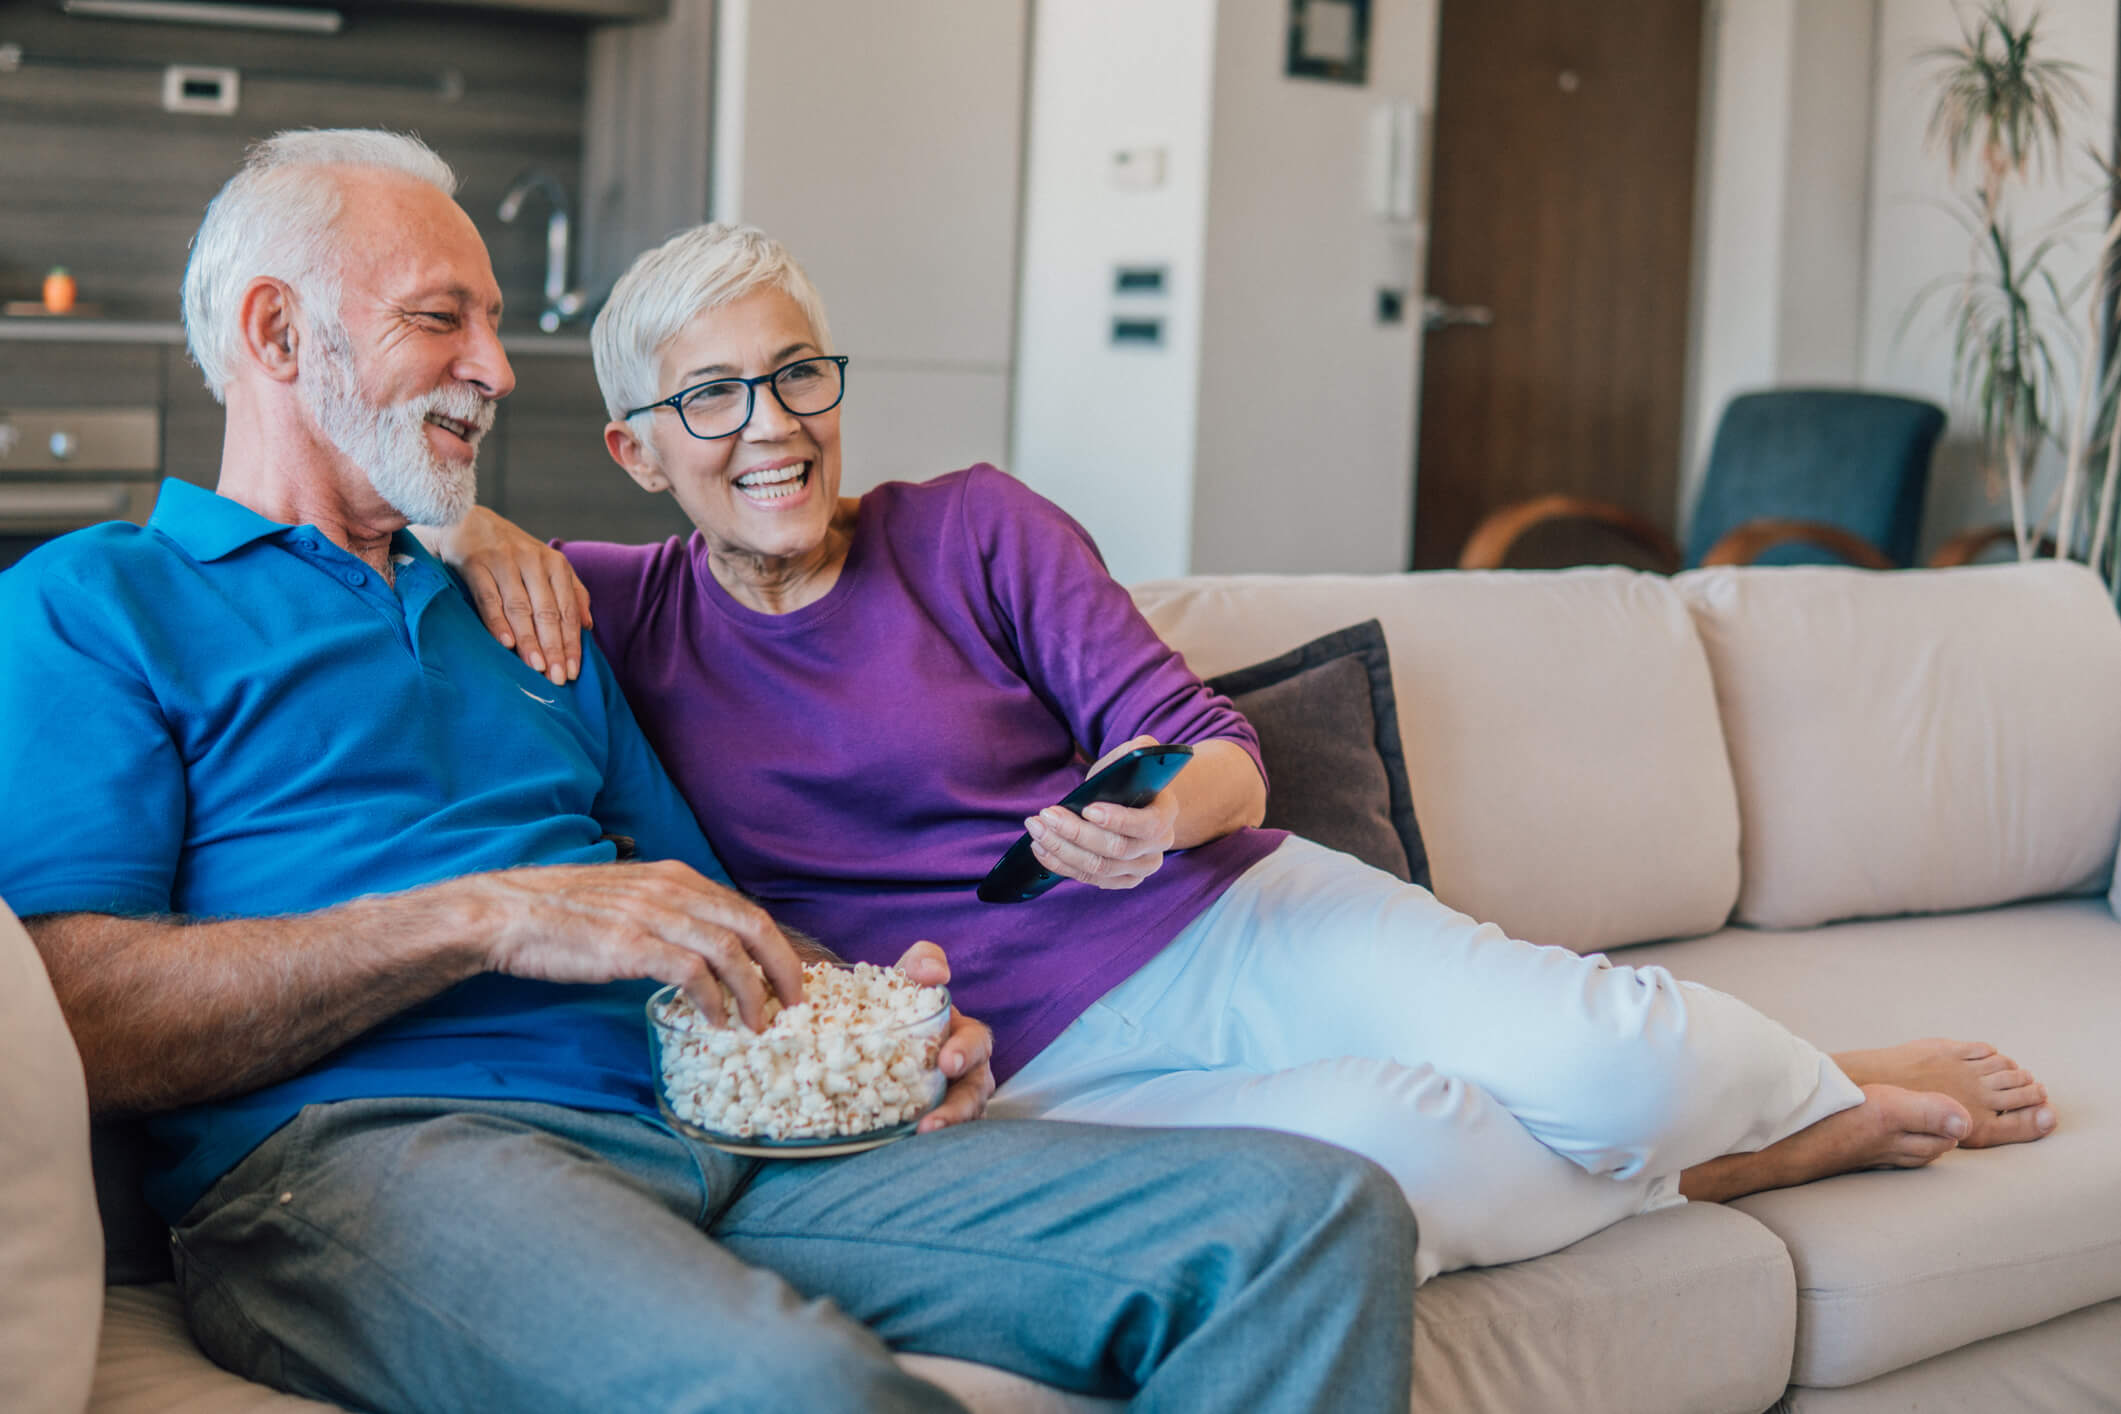 Older couple sitting on couch eating popcorn watching live TV streaming service